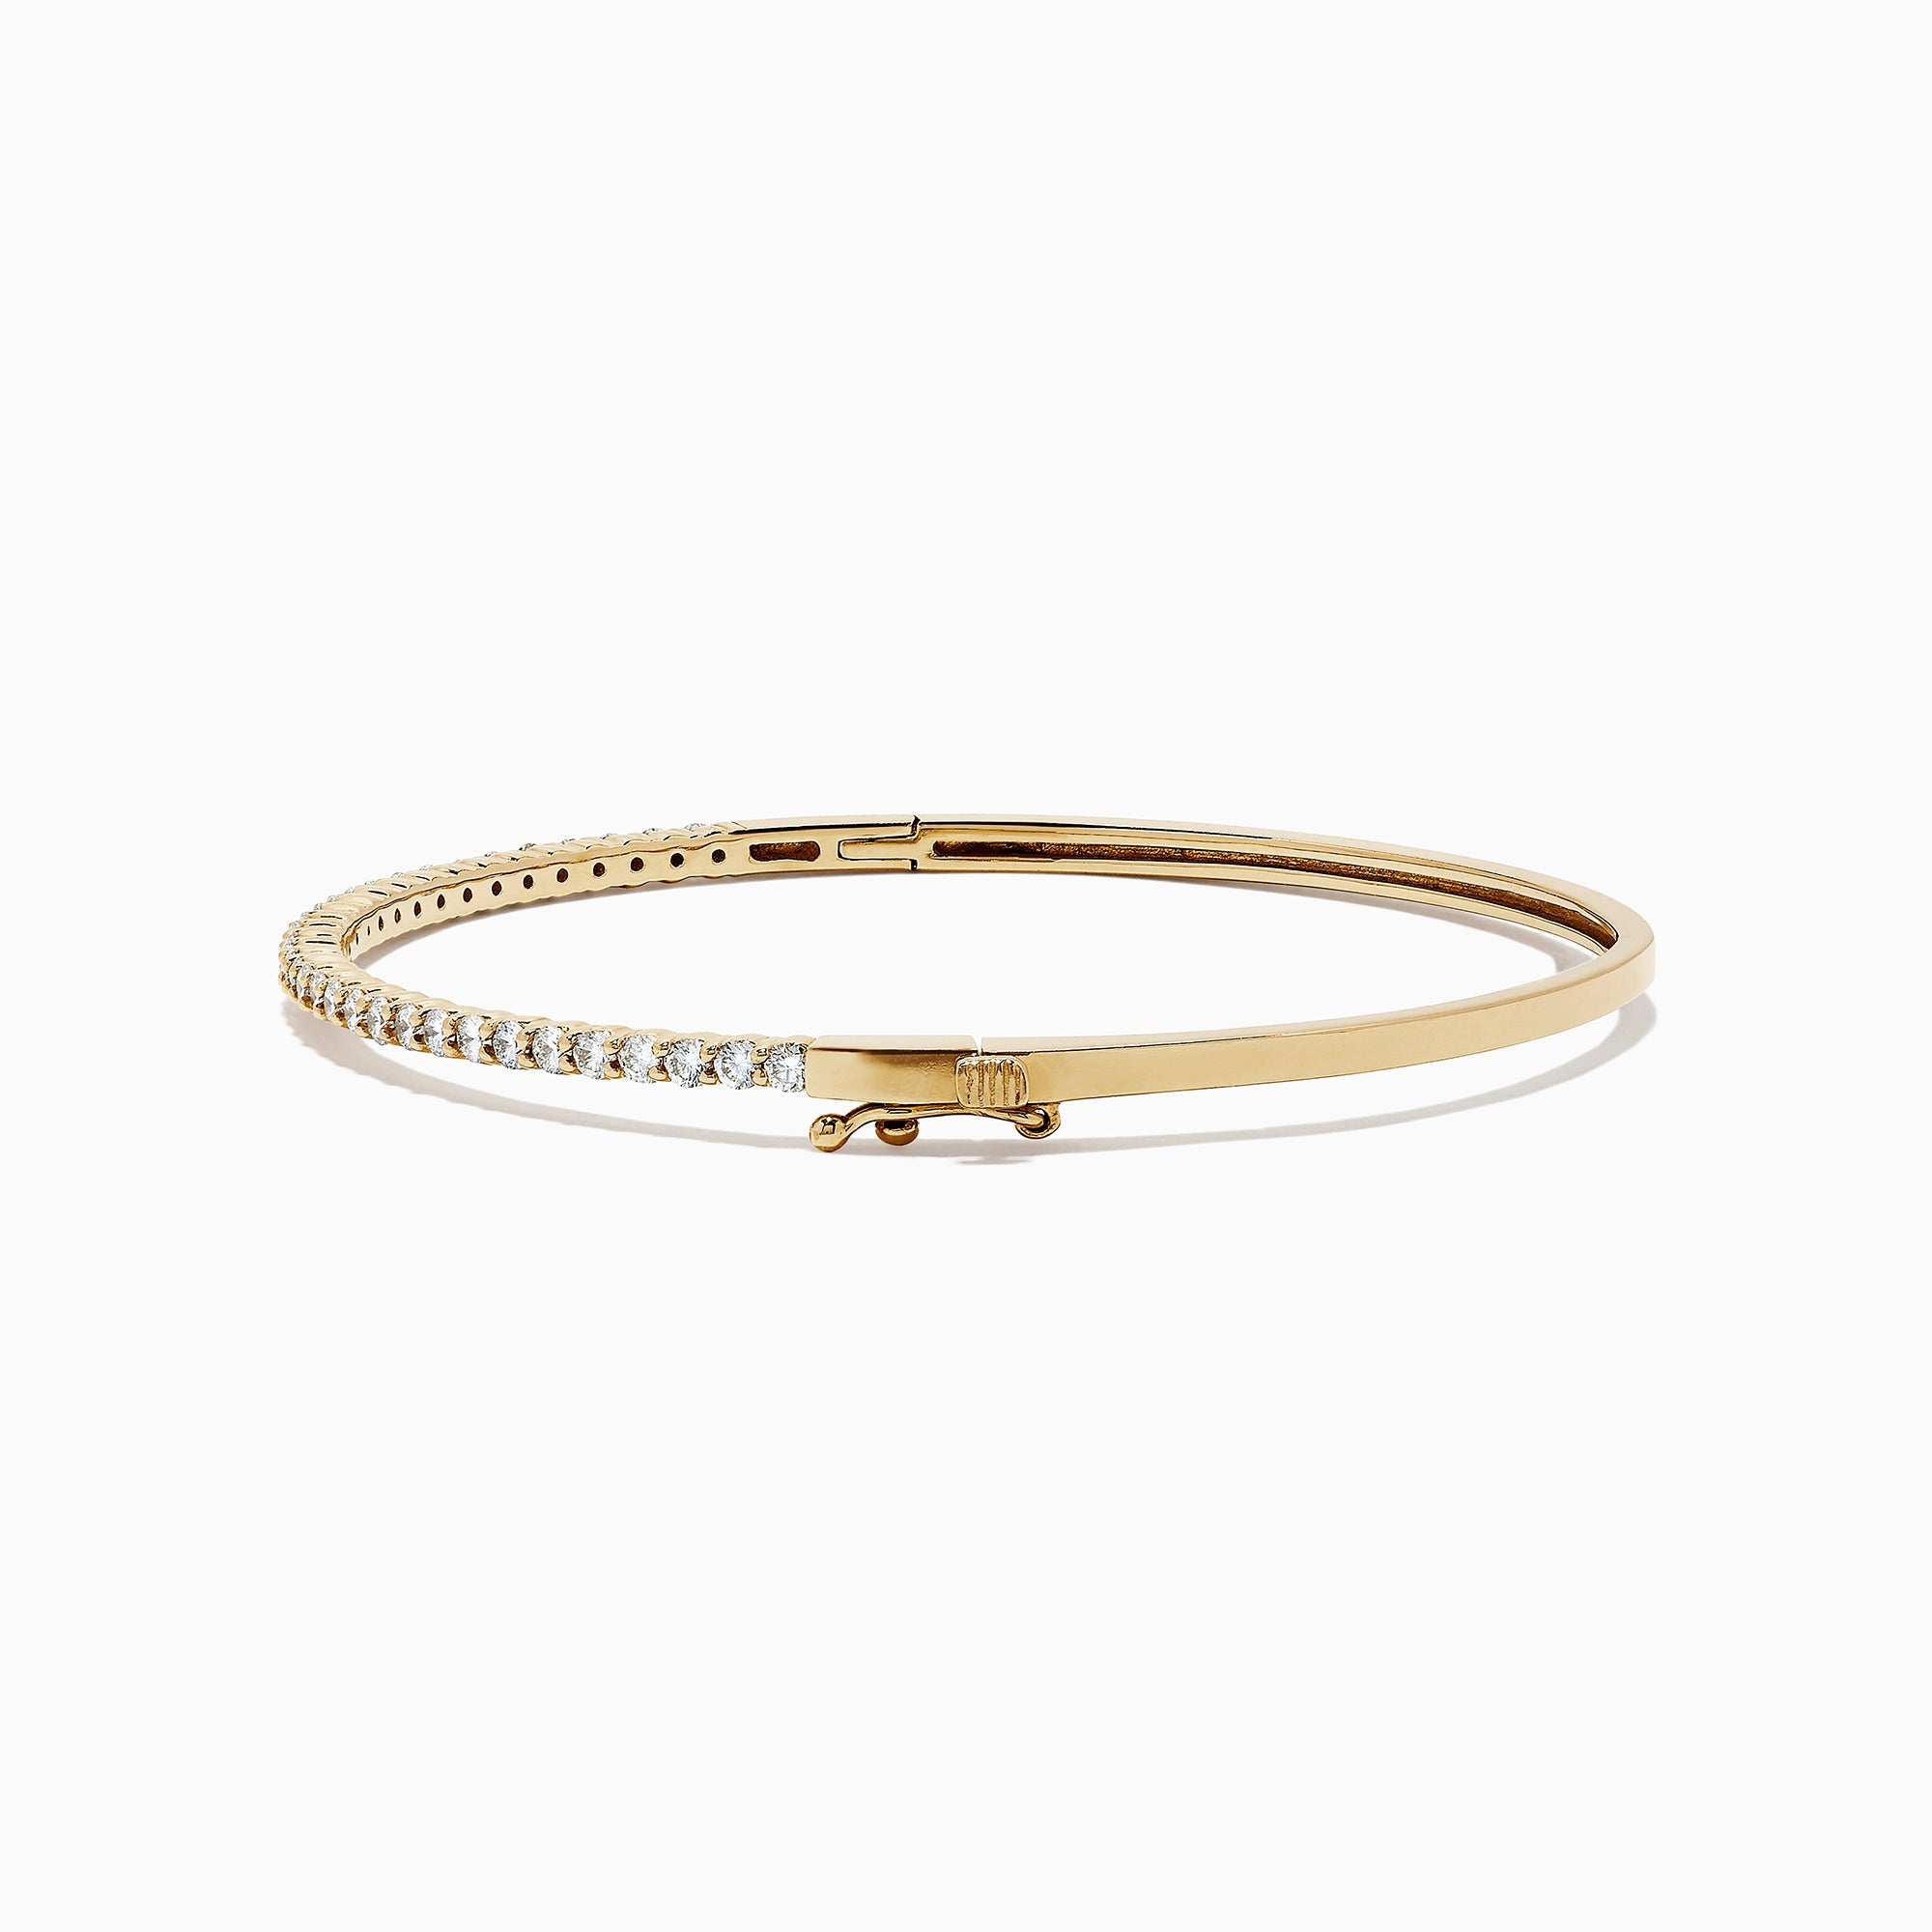 Effy D'Oro 14K Yellow Gold Diamond Bangle, 1.00 TCW